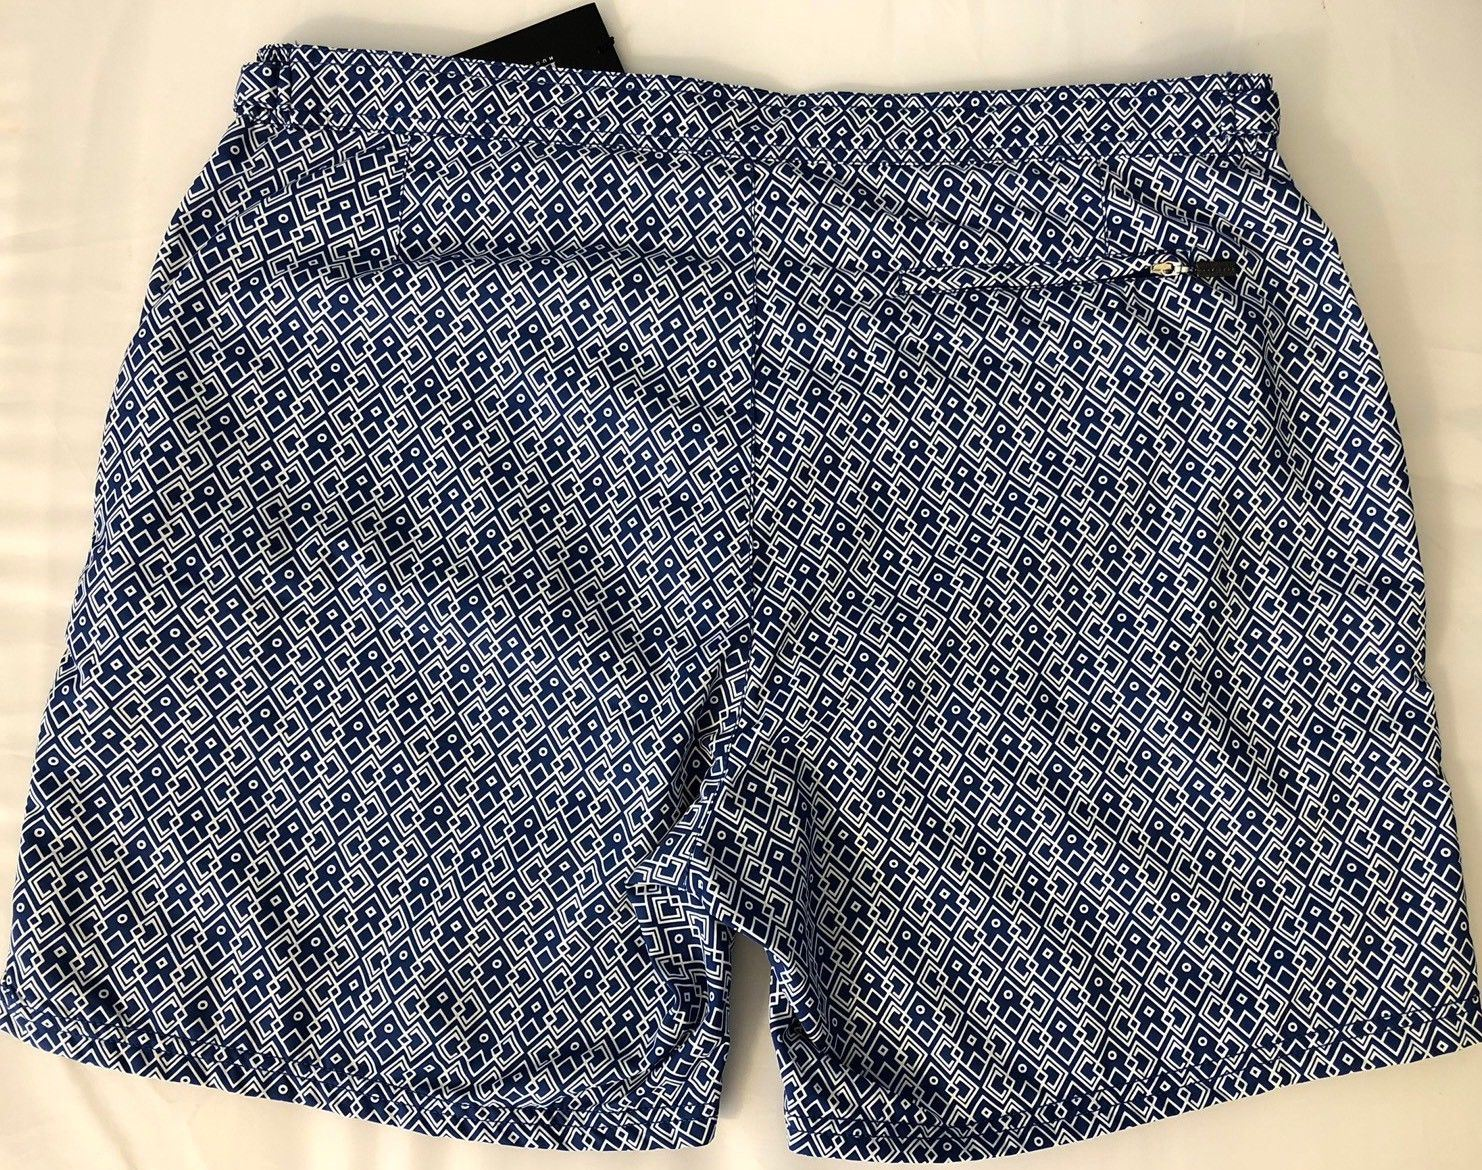 NWT $159 Boss Hugo Boss Tigerfish Mens Quick Dry Blue Swimsuit Shorts Size 2XL - BAYSUPERSTORE